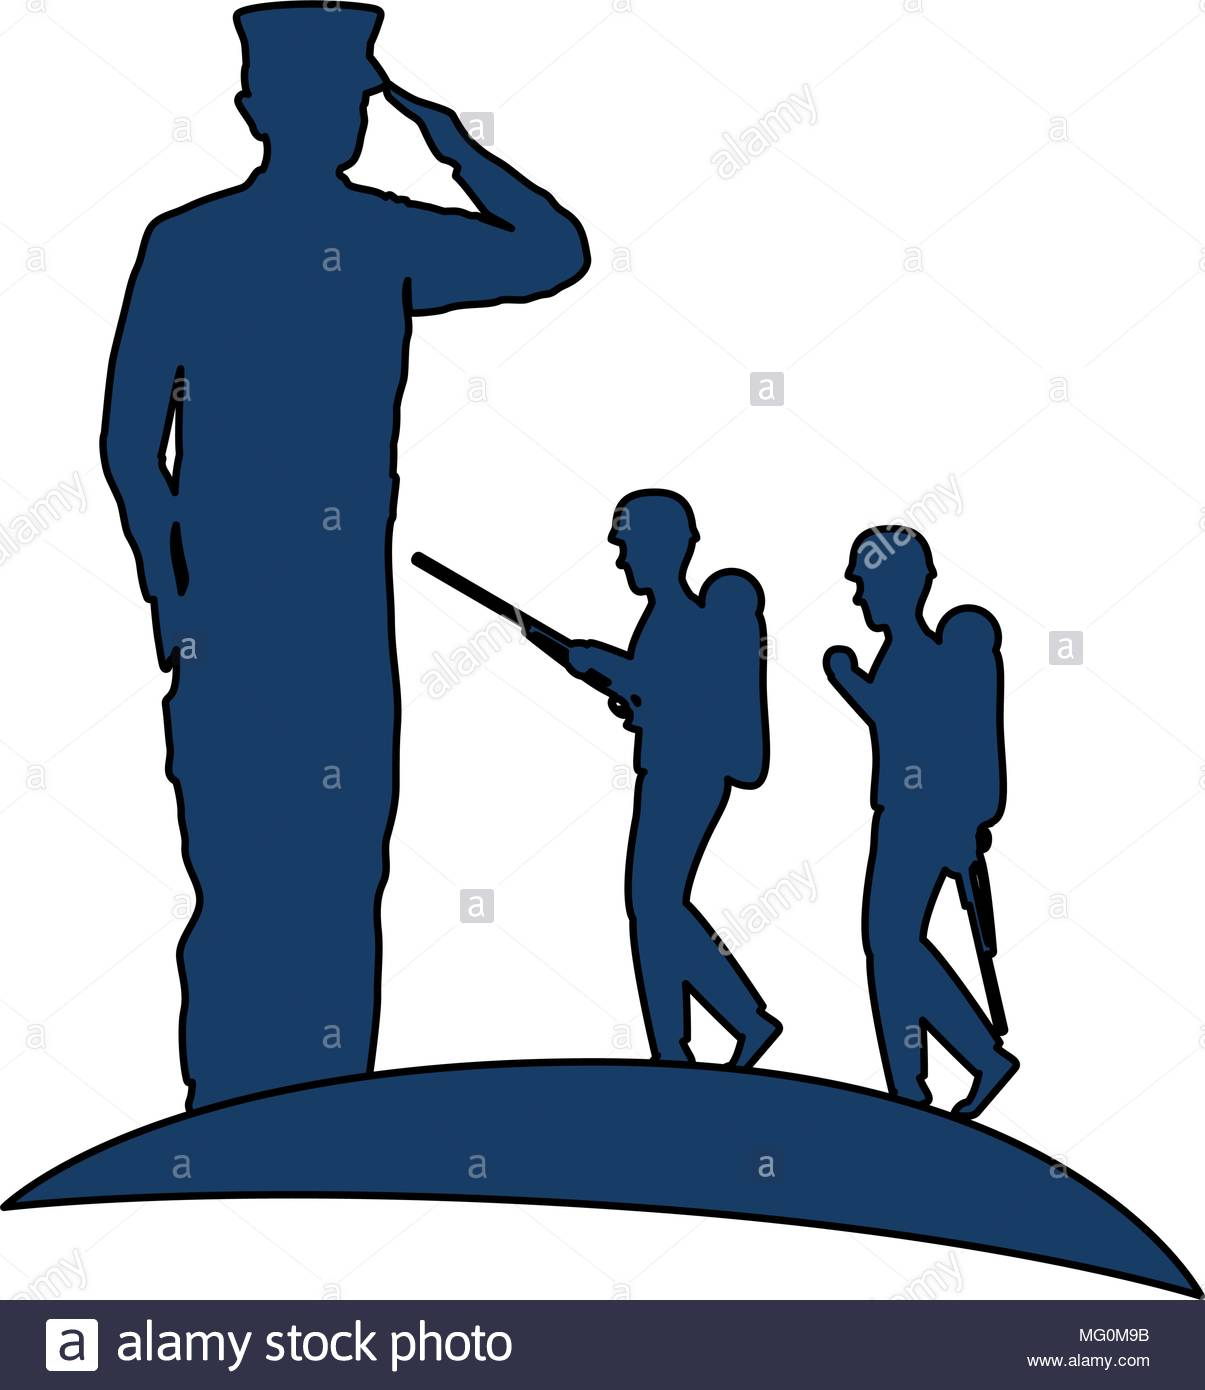 1205x1390 Silhouette Of Military Saluting With Tropers Vector Illustration